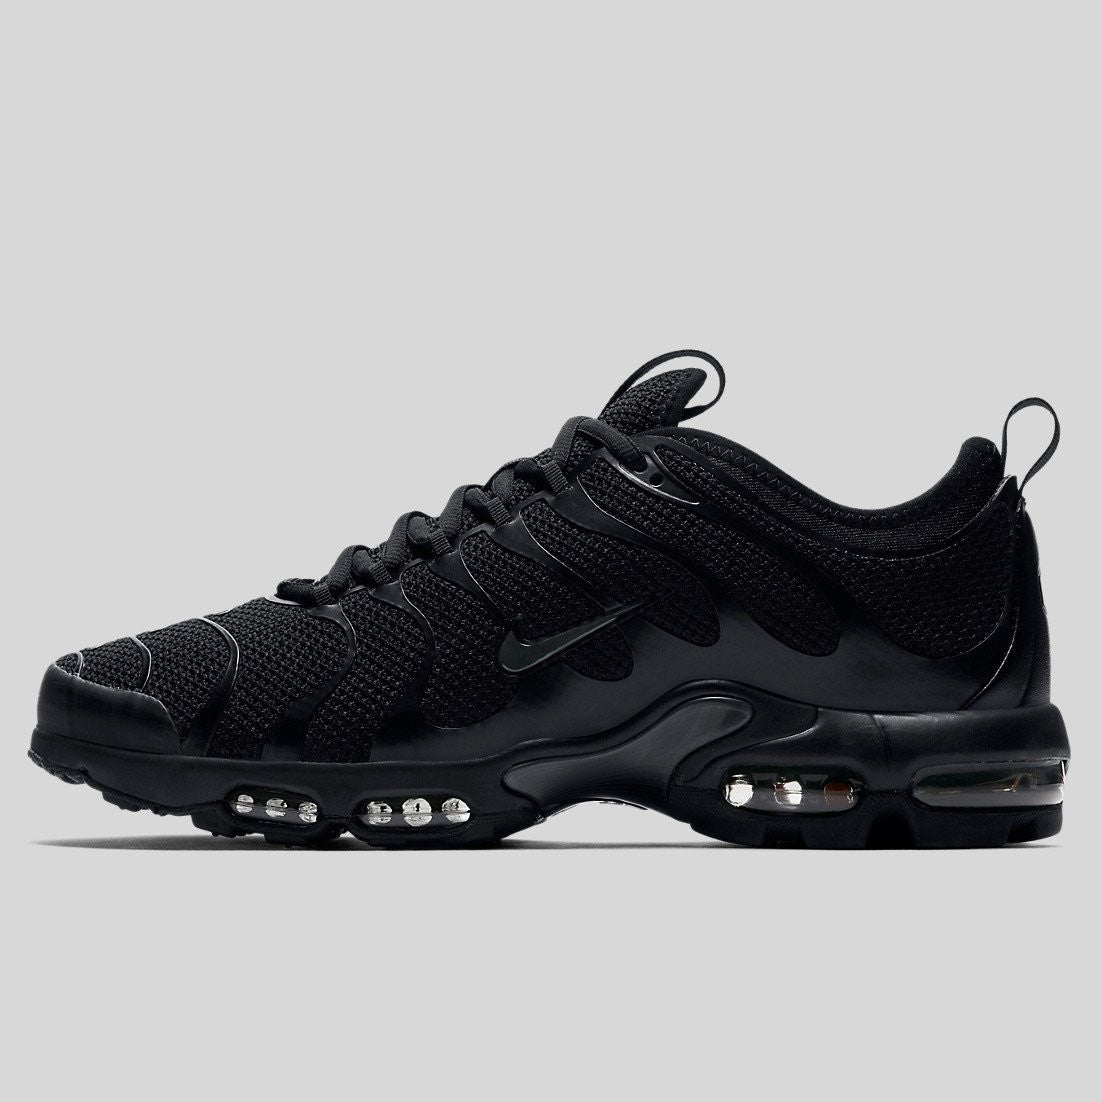 quite nice sale retailer shades of Nike Air Max Plus TN Ultra Black Anthracite Black